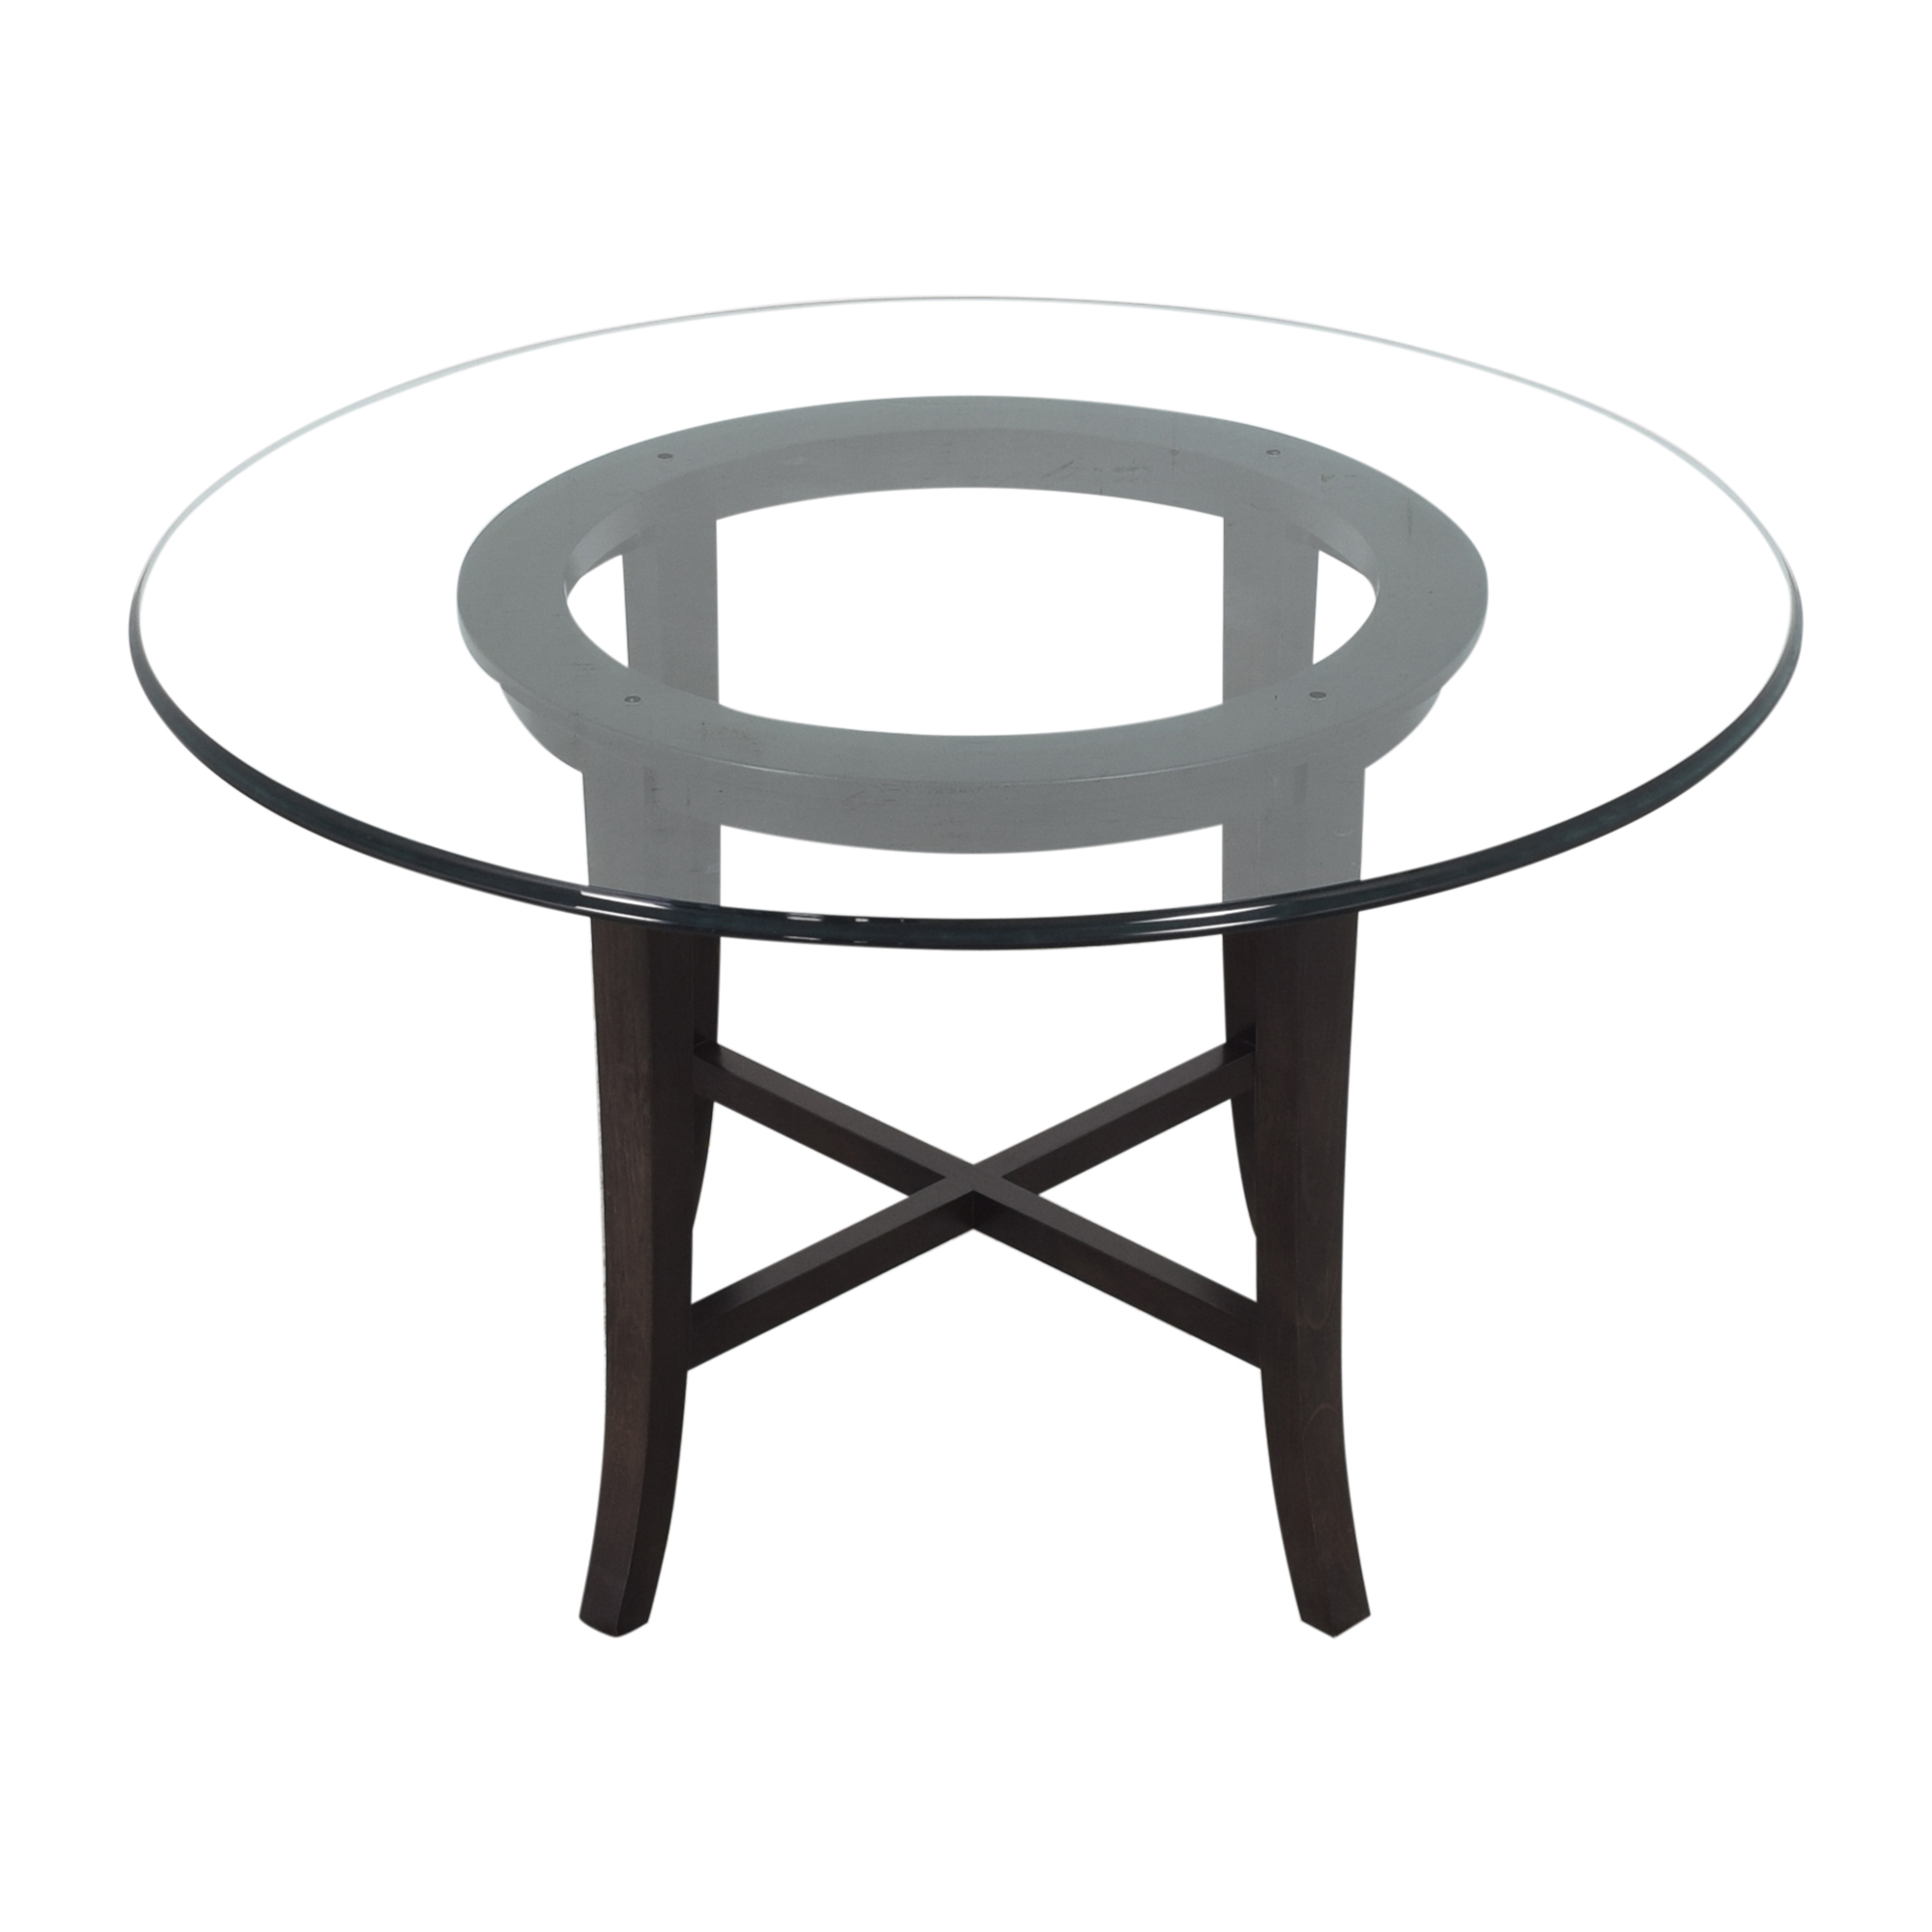 shop Crate & Barrel Crate & Barrel Halo Round Dining Table online